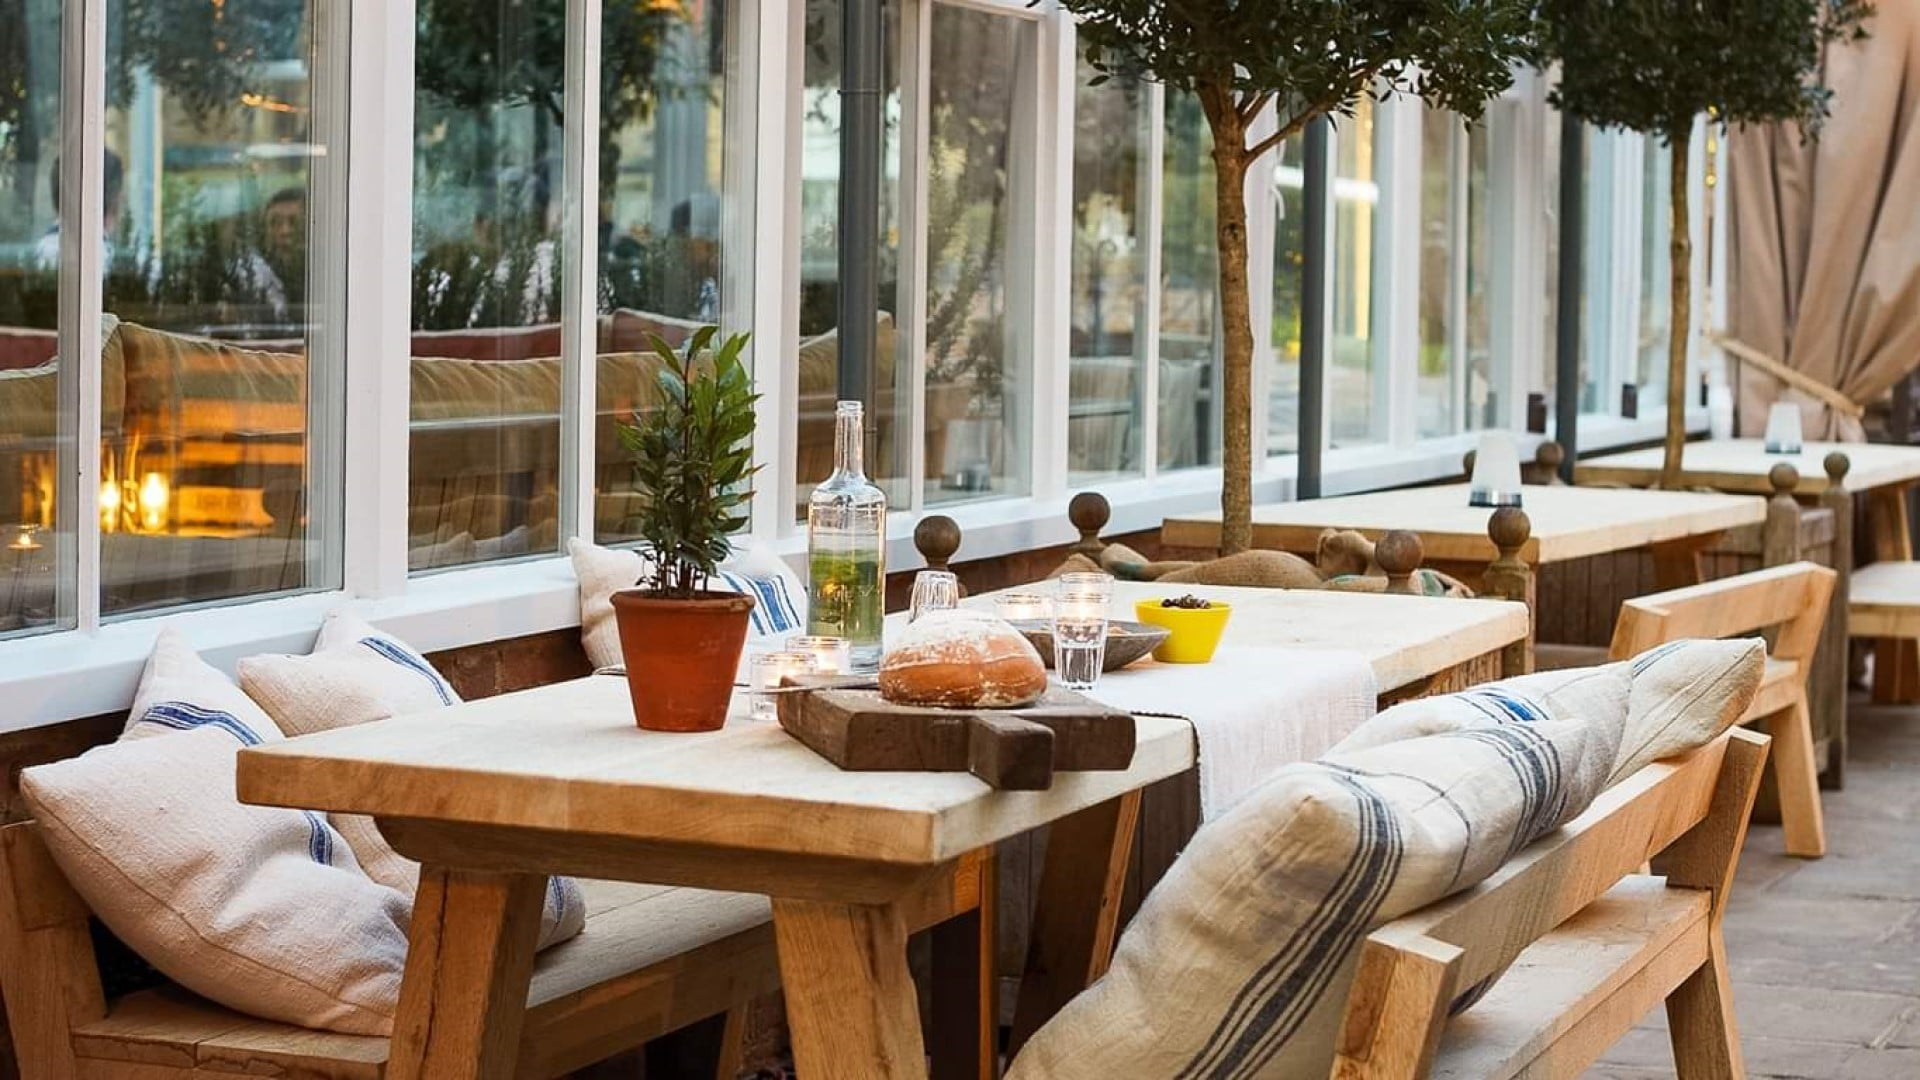 Where to eat outside in Oxfordshire during this week's heatwave